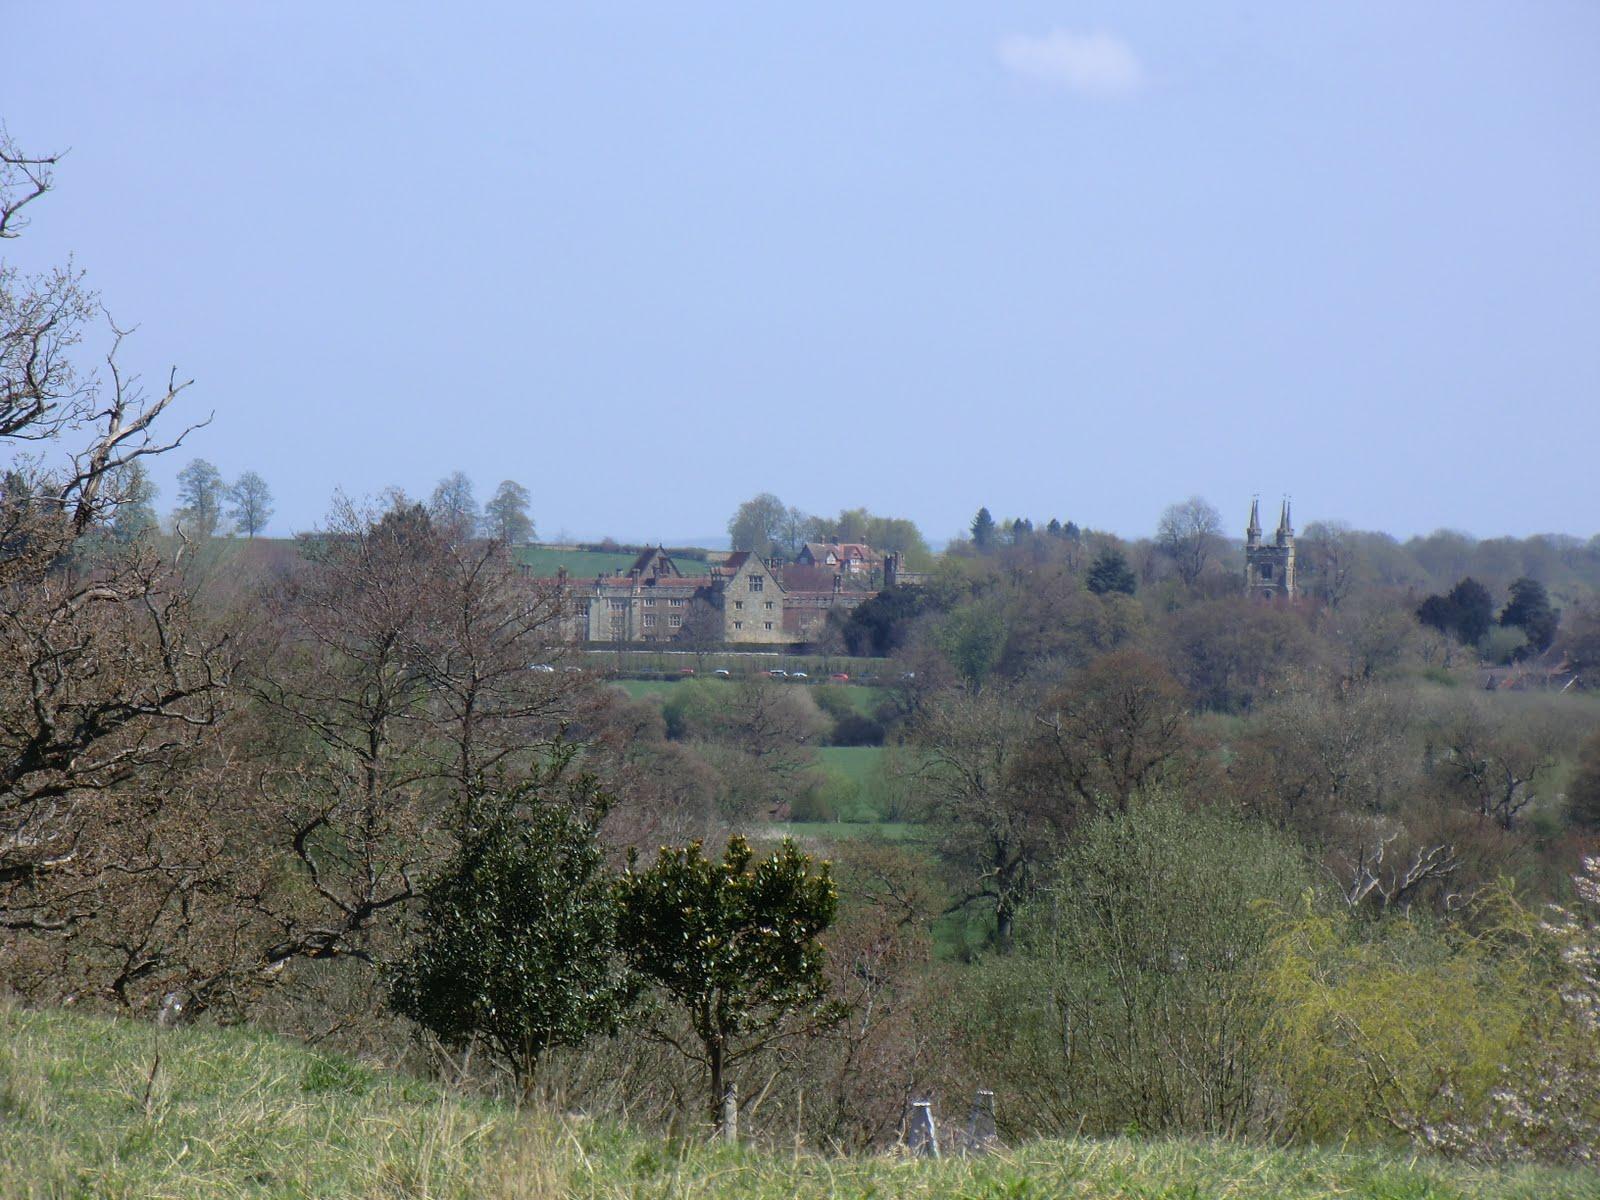 CIMG6332 Distant view of Penshurst Place from Salmans Manor